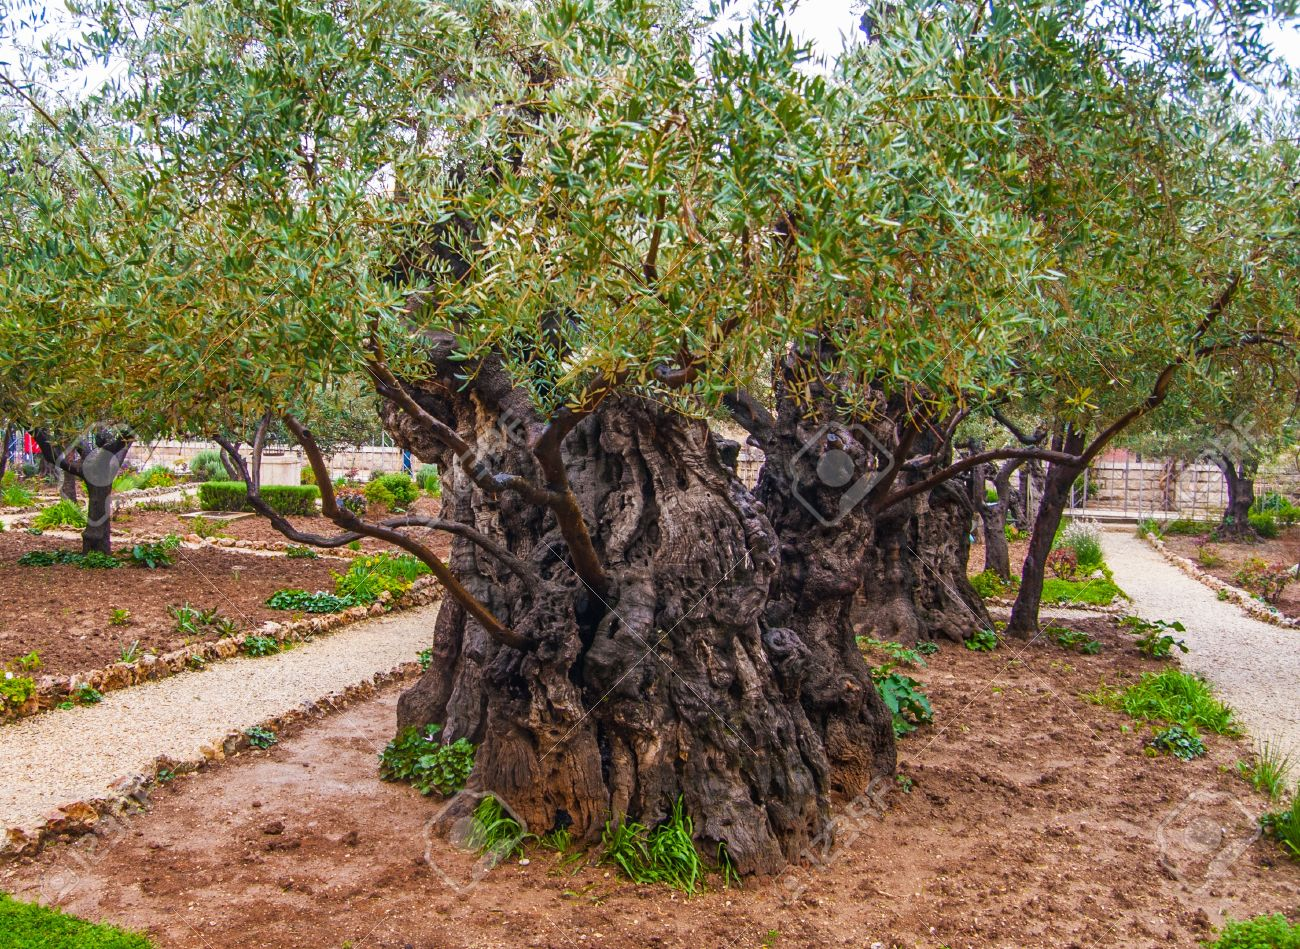 Olives Jerusalem Garden Of Gethsemane Israel Stock Photo Picture And Royalty Free Image Image 13036289